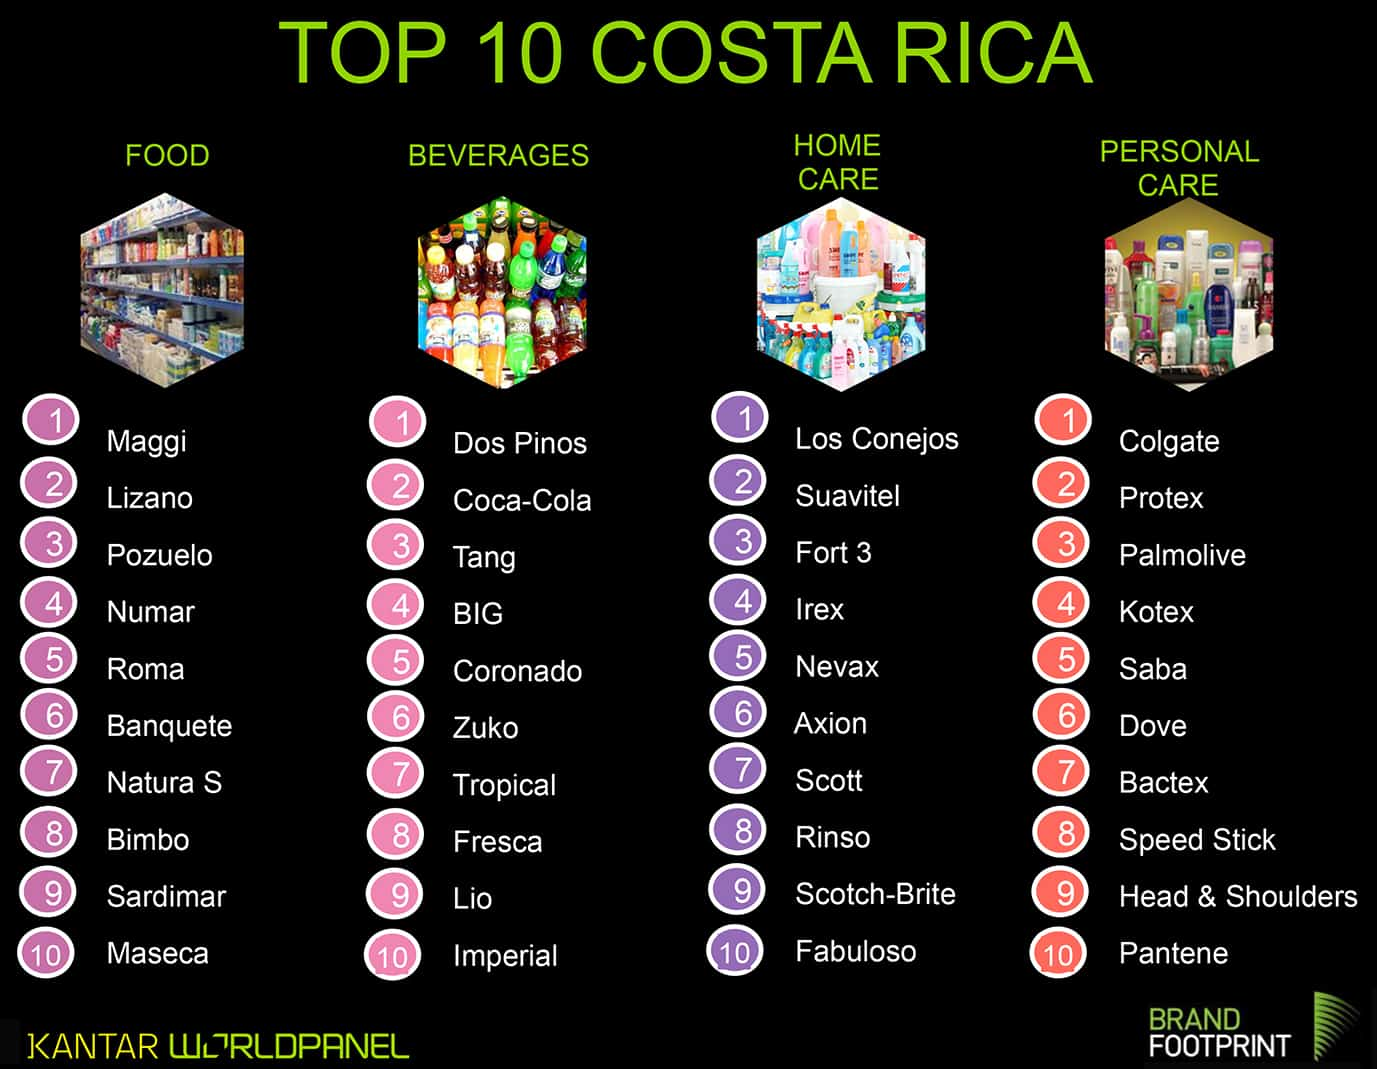 Costa Rica's Top 10 brands by category